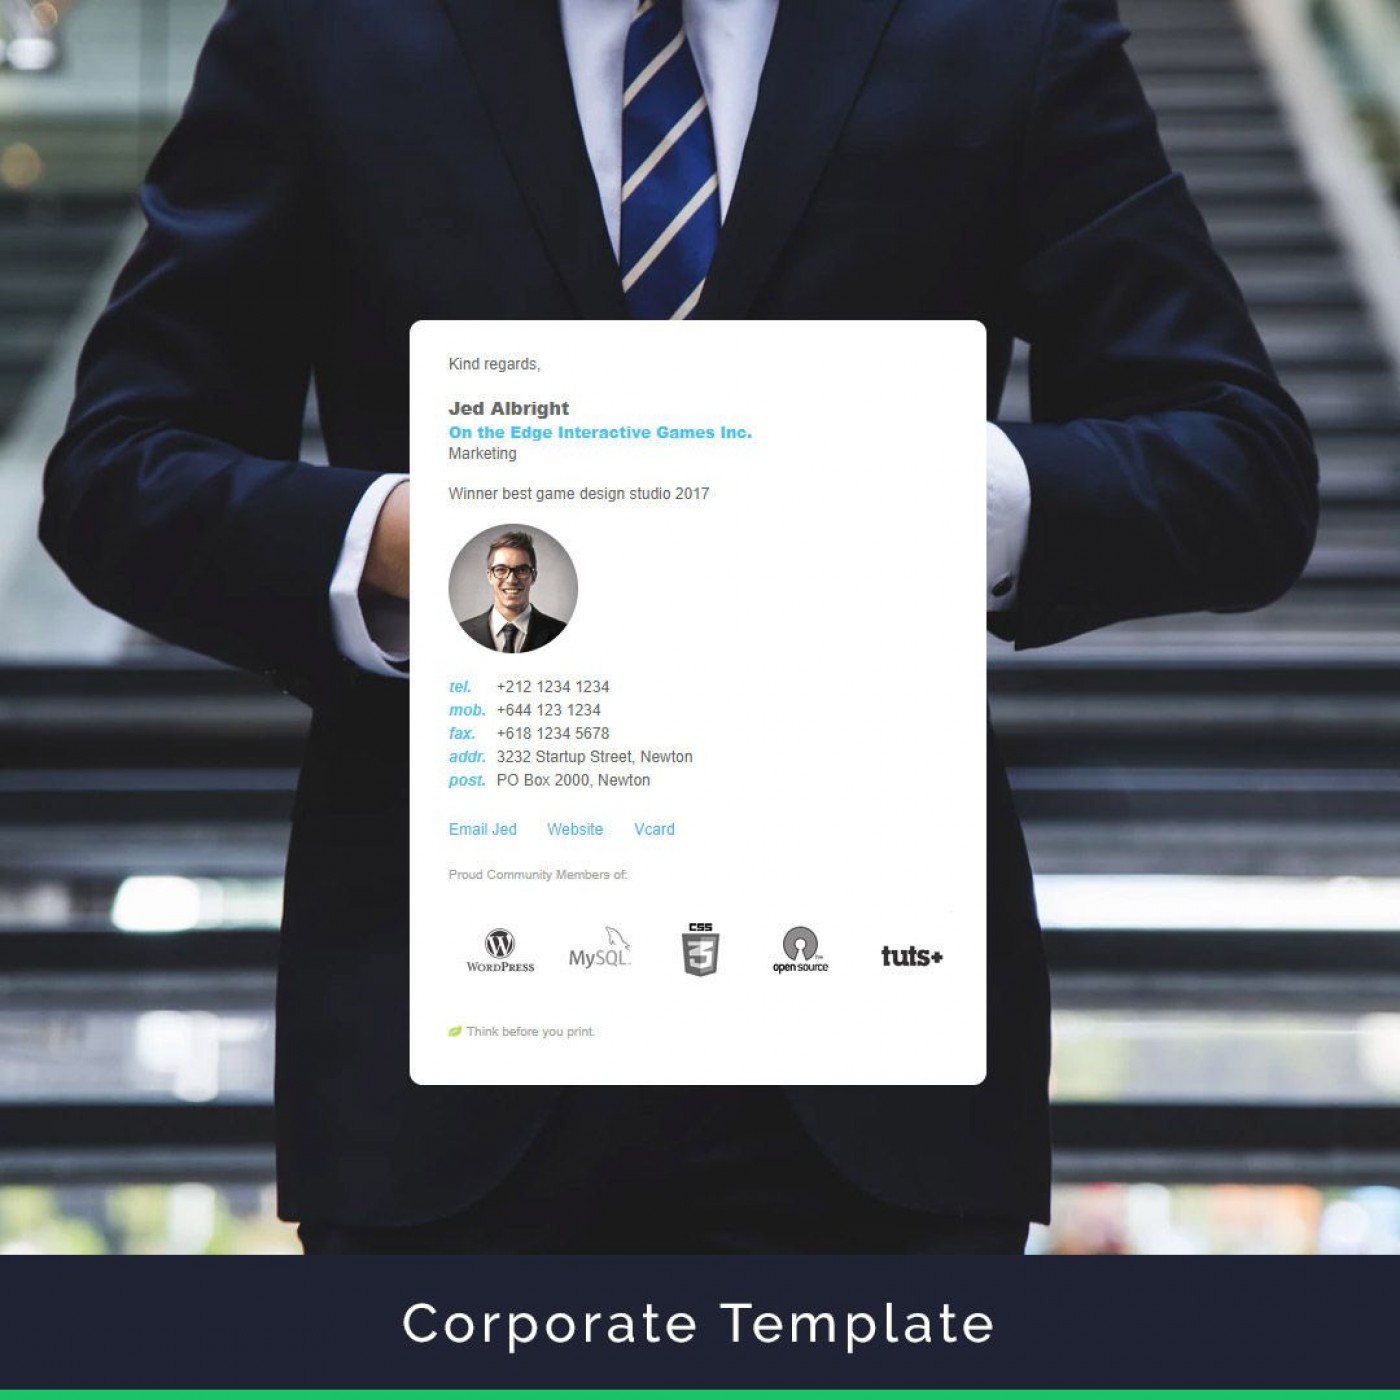 006 Best Professional Email Signature Template High Resolution  Busines Download1400